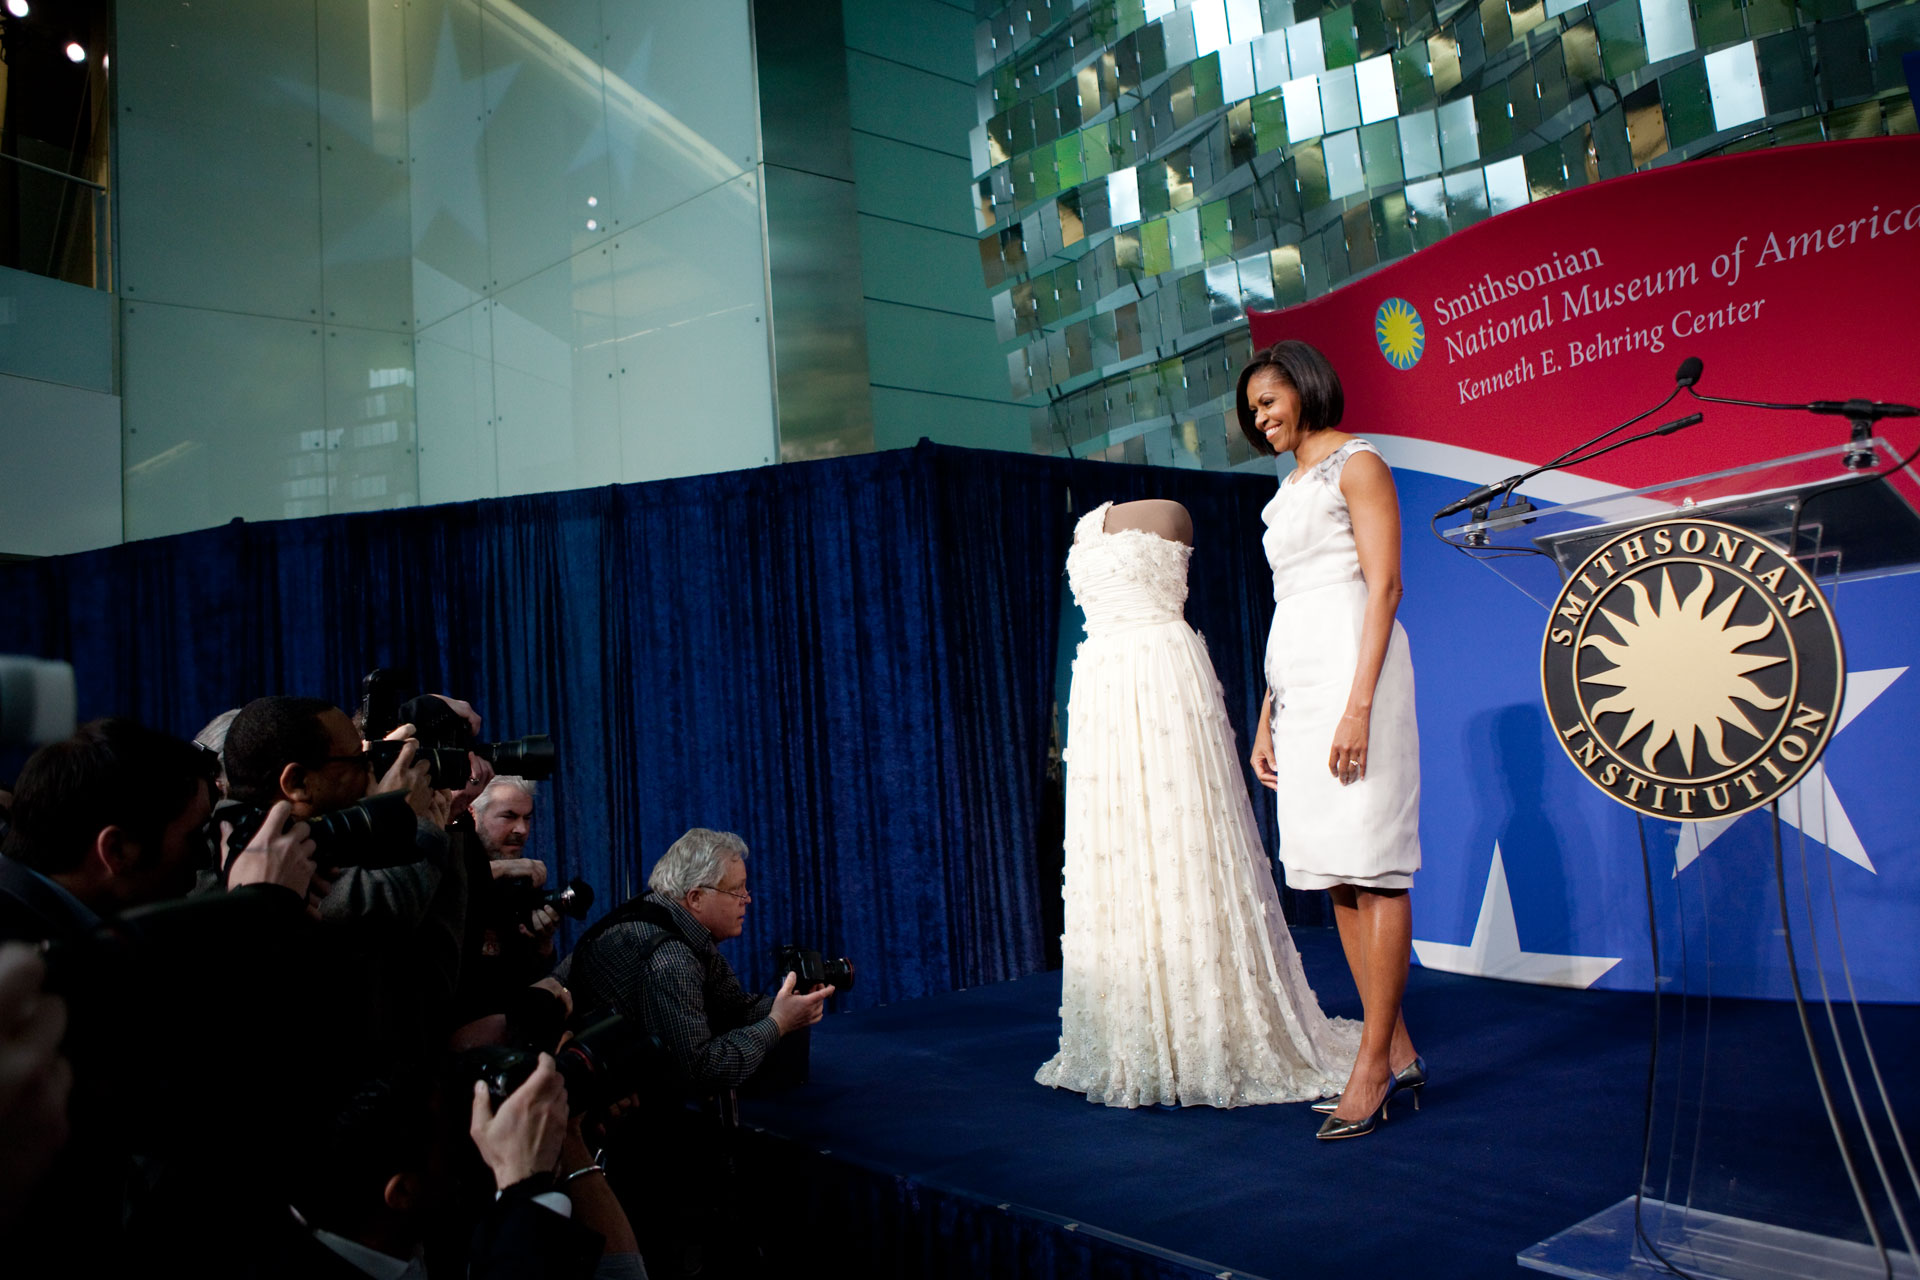 First Lady Michelle Obama presents her 2009 inaugural gown